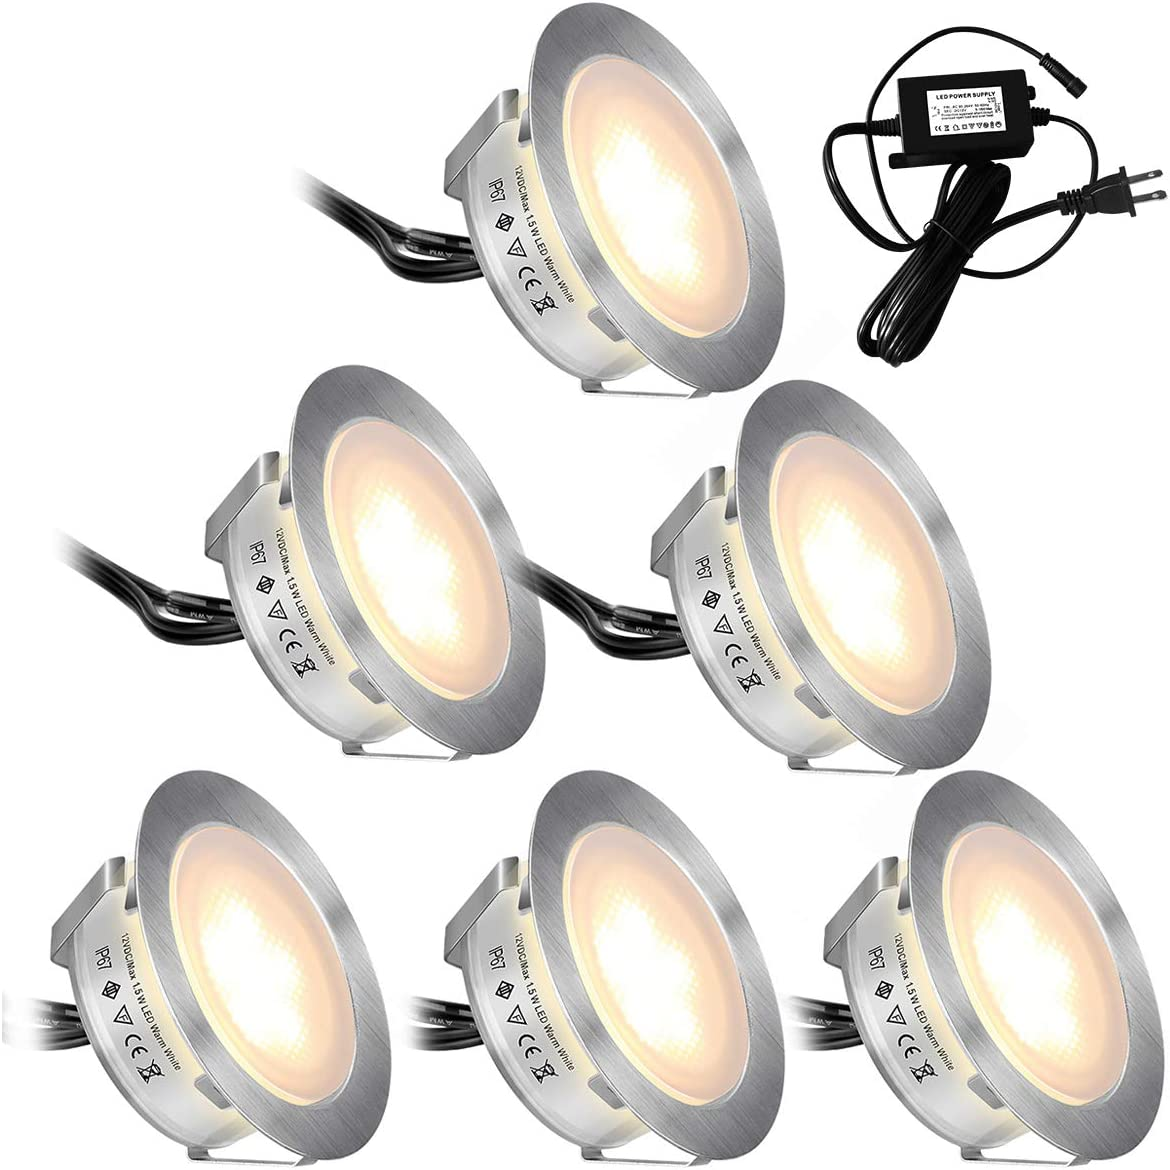 Recessed LED Deck Lights Kits 6 Pack,SMY Upgrade Version In Ground Outdoor LED Deck Lighting Waterproof IP67,Low Voltage LED Lights for Garden,Yard Steps,Stair,Patio,Pool Deck,Kitchen Decoration